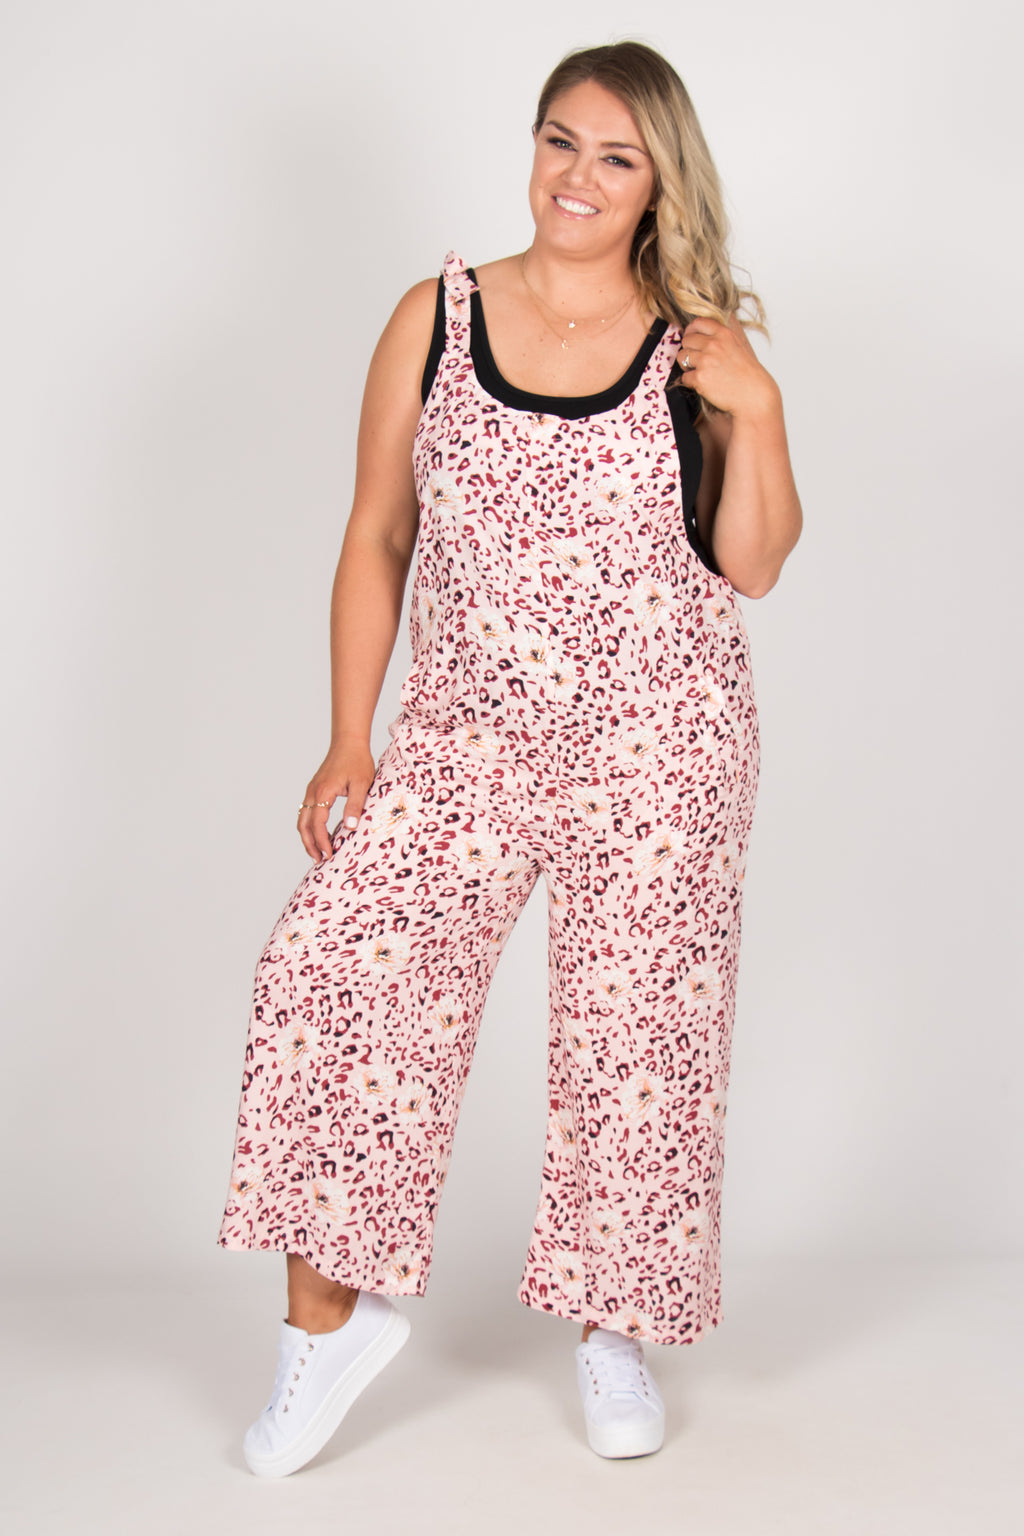 Bonnie Overalls in Pink